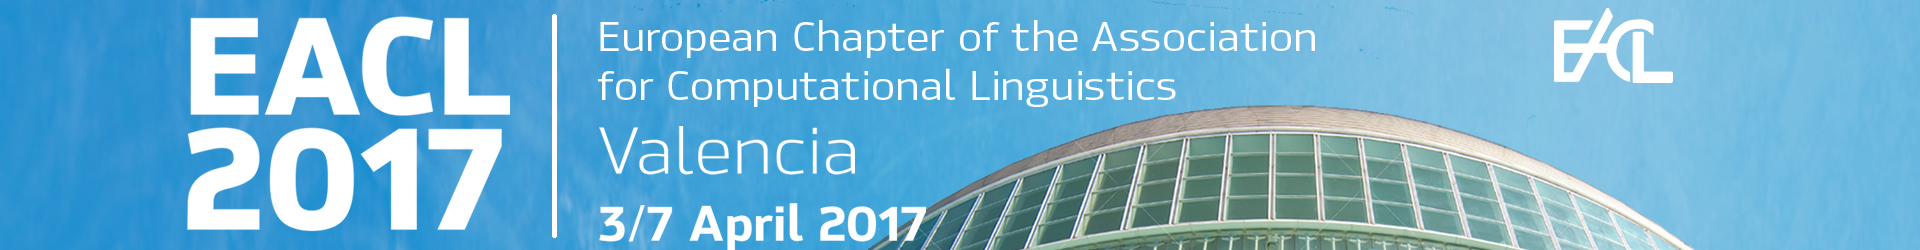 EACL 2017